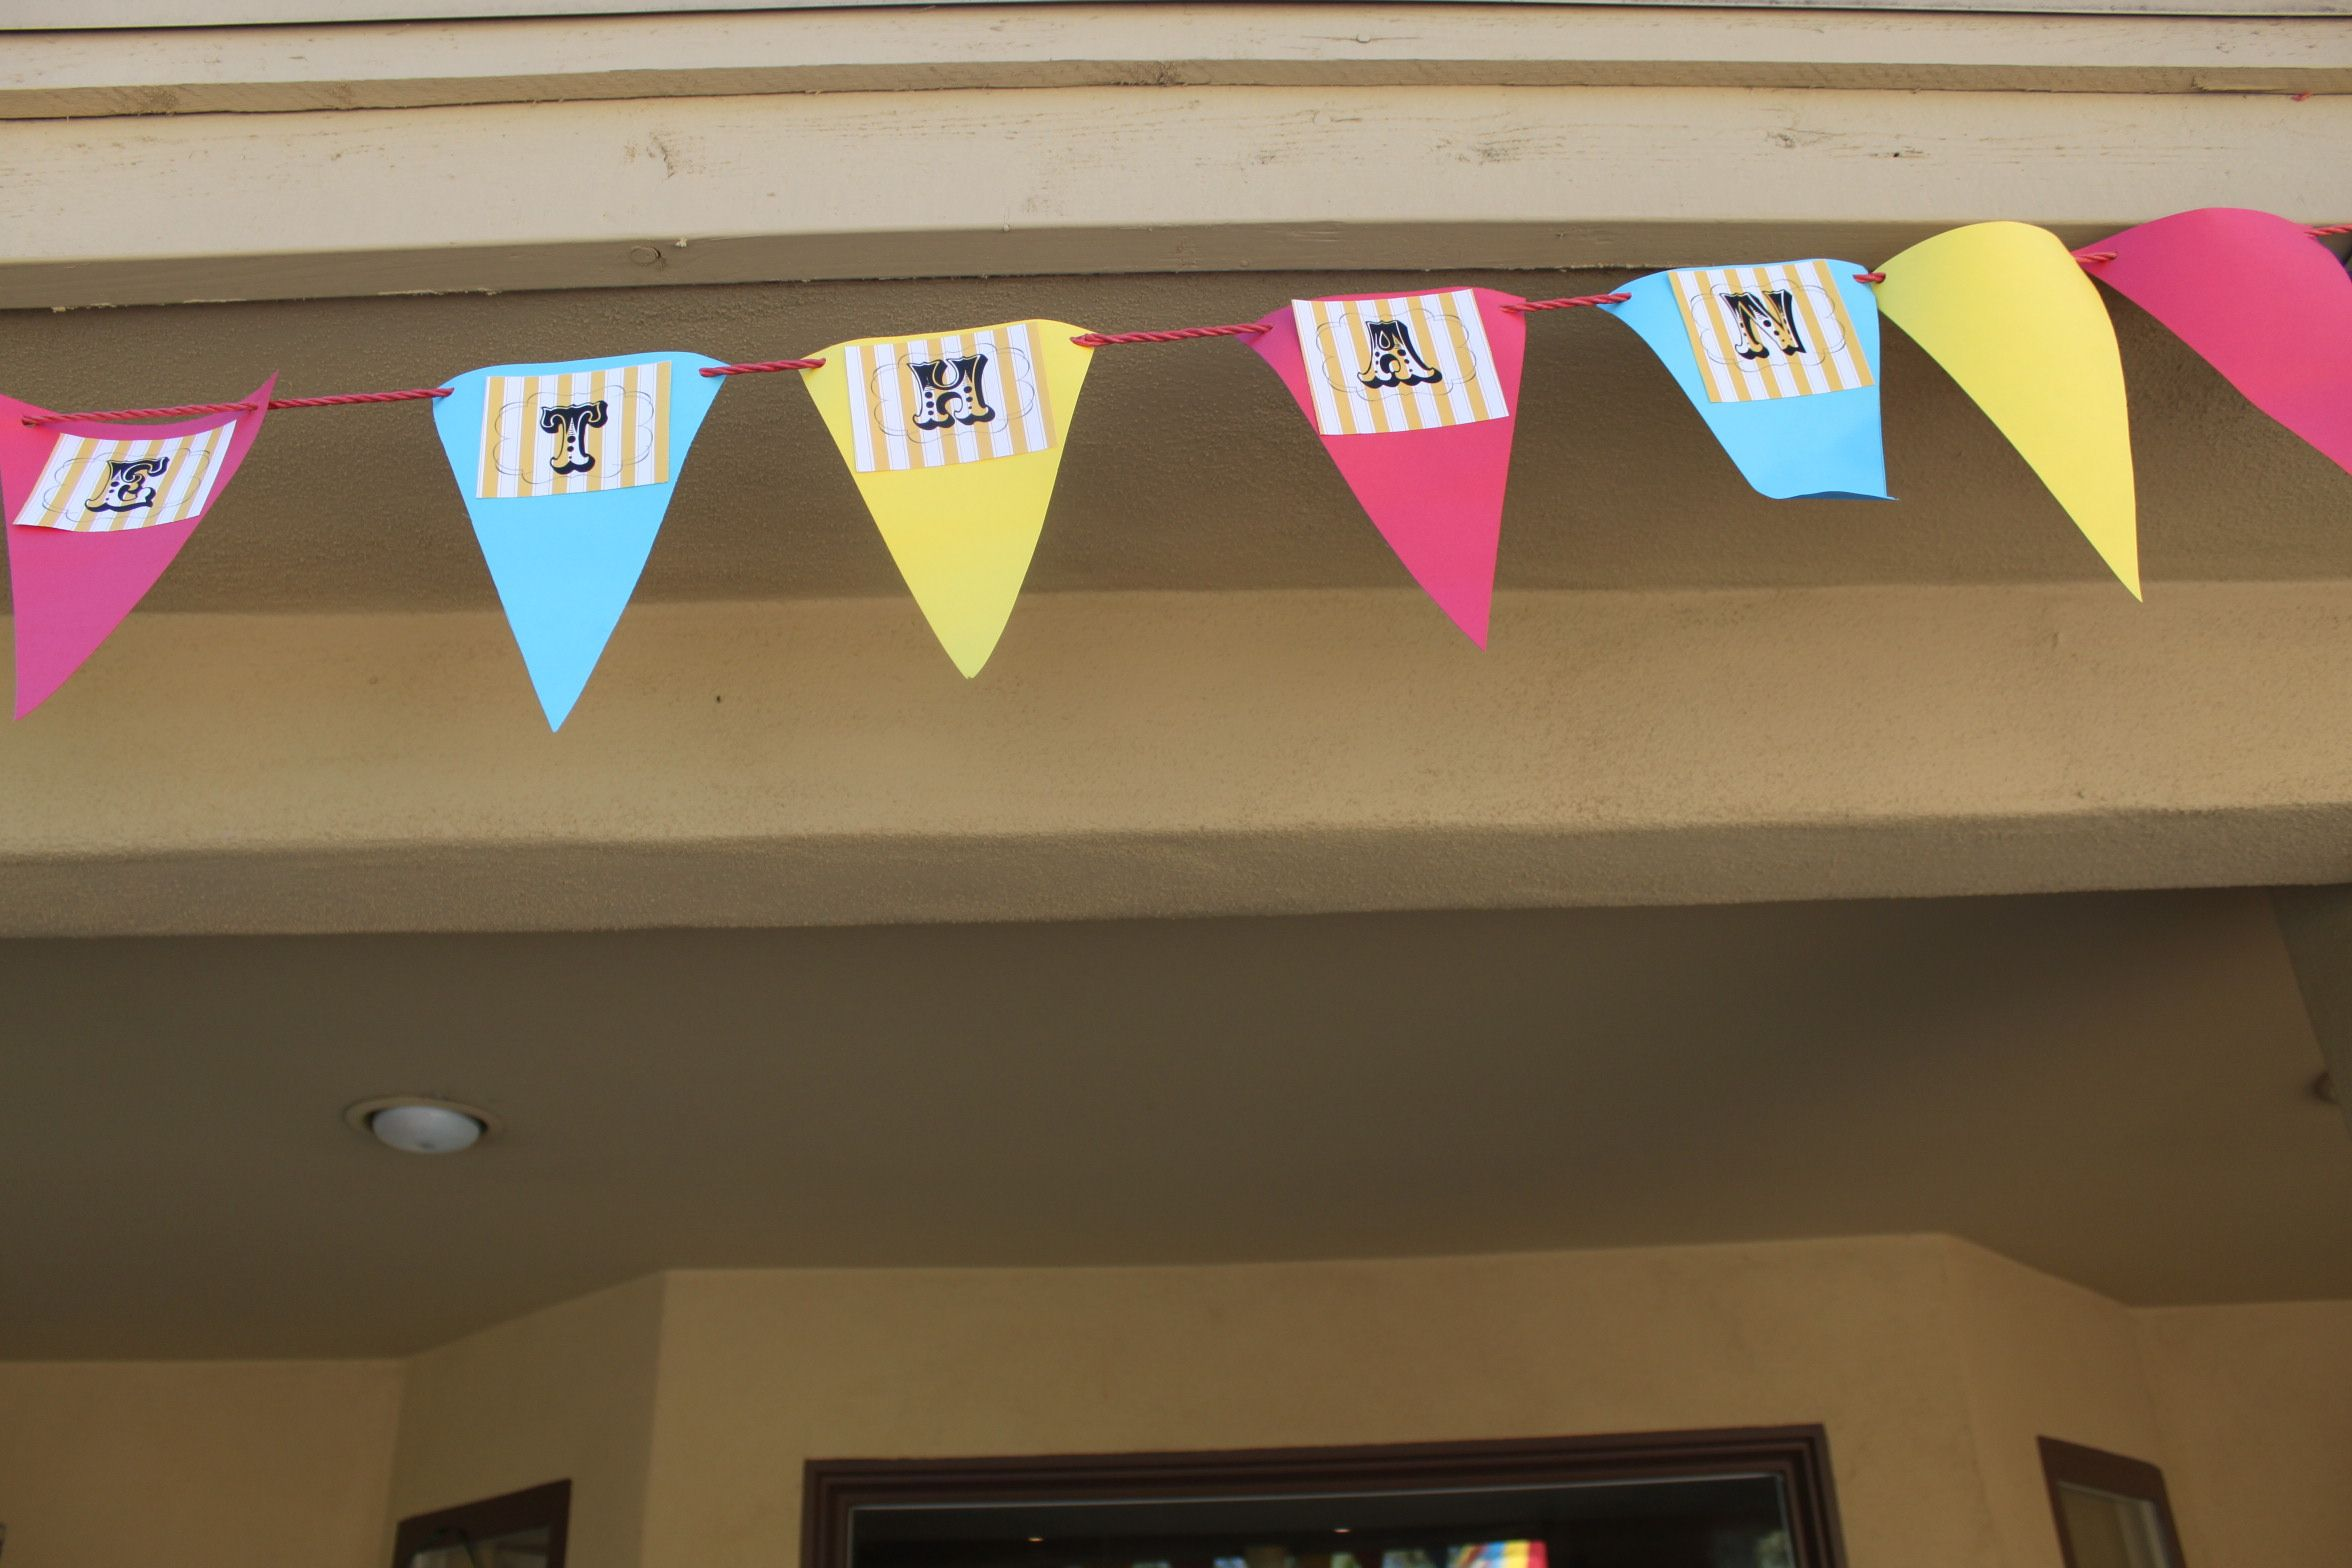 Customized birthday banner using red clothes line from dollar store and construction paper triangles.